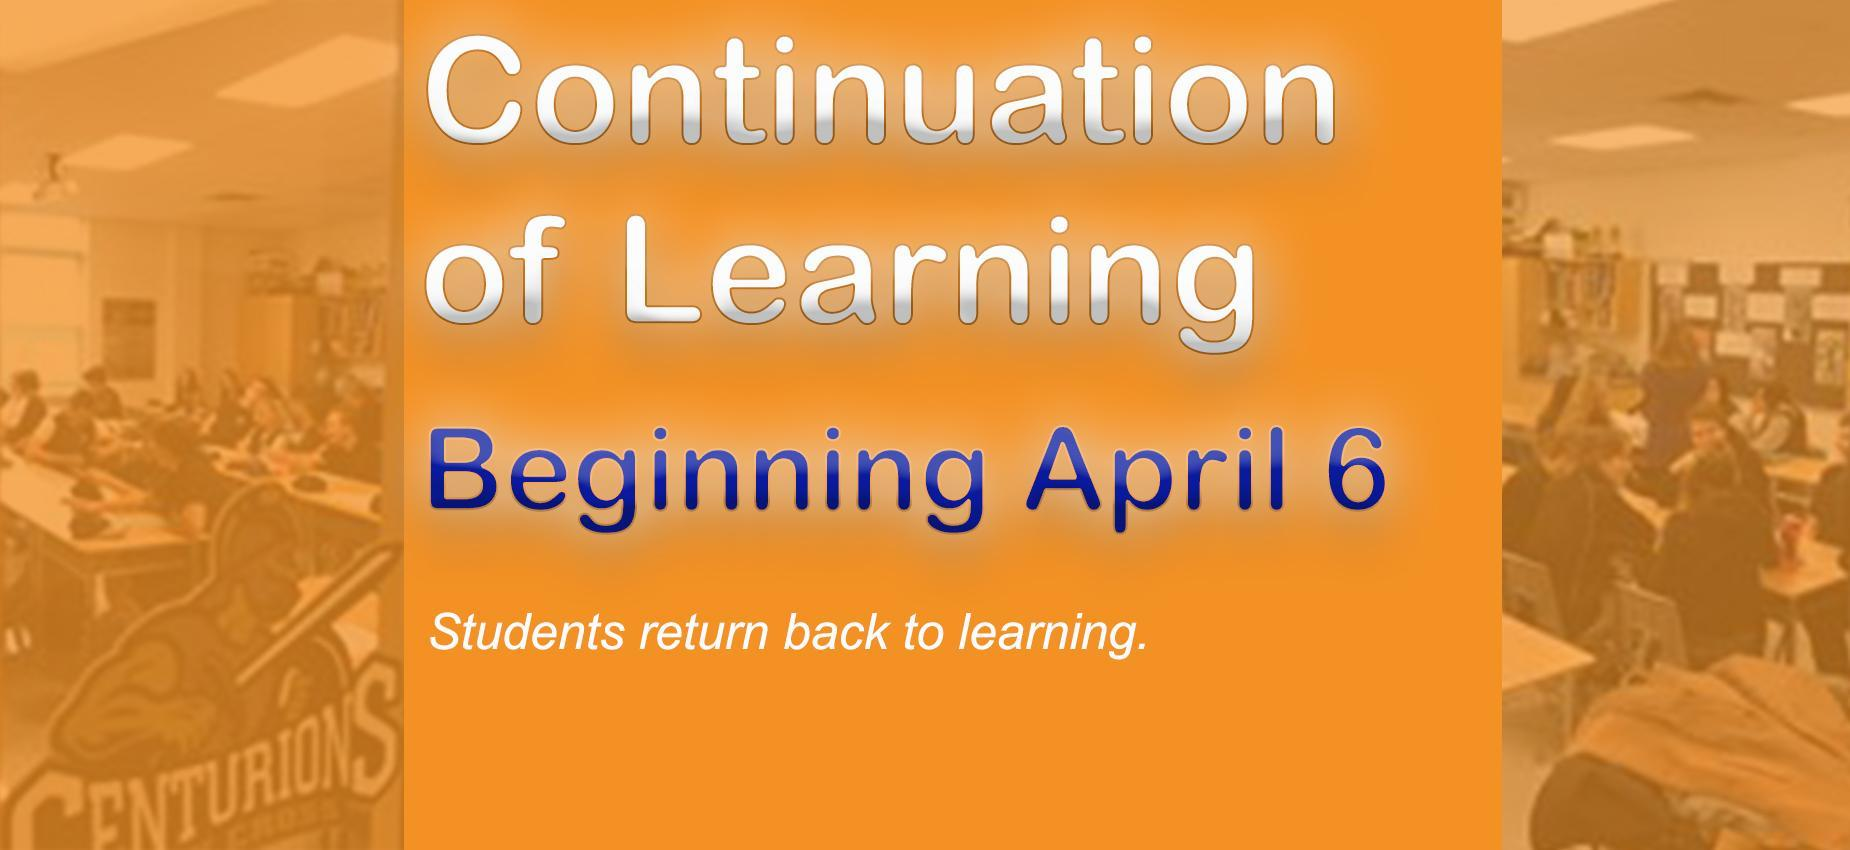 Students Return to Learning April 6